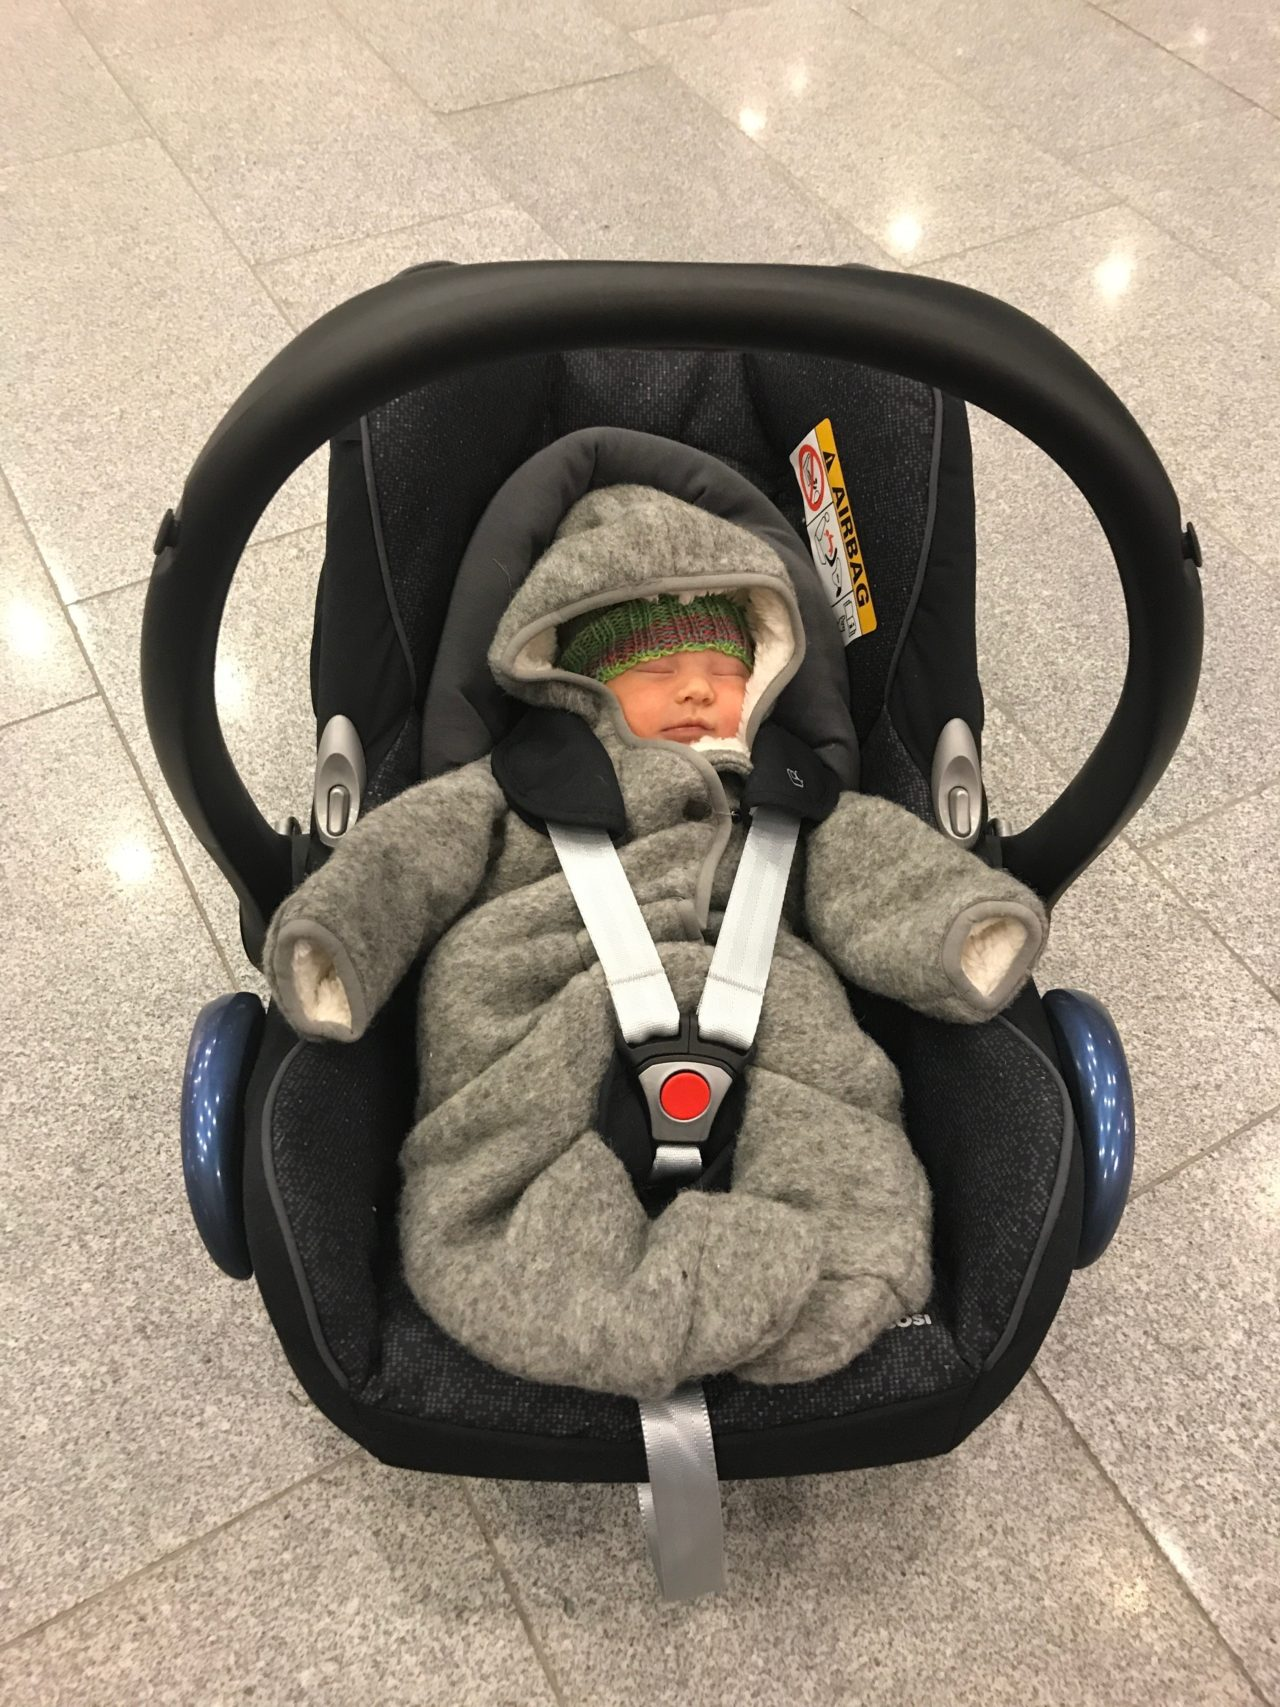 Newborn Boy In A Gray Winter Overall And Knitted Hat In Baby Car Seat